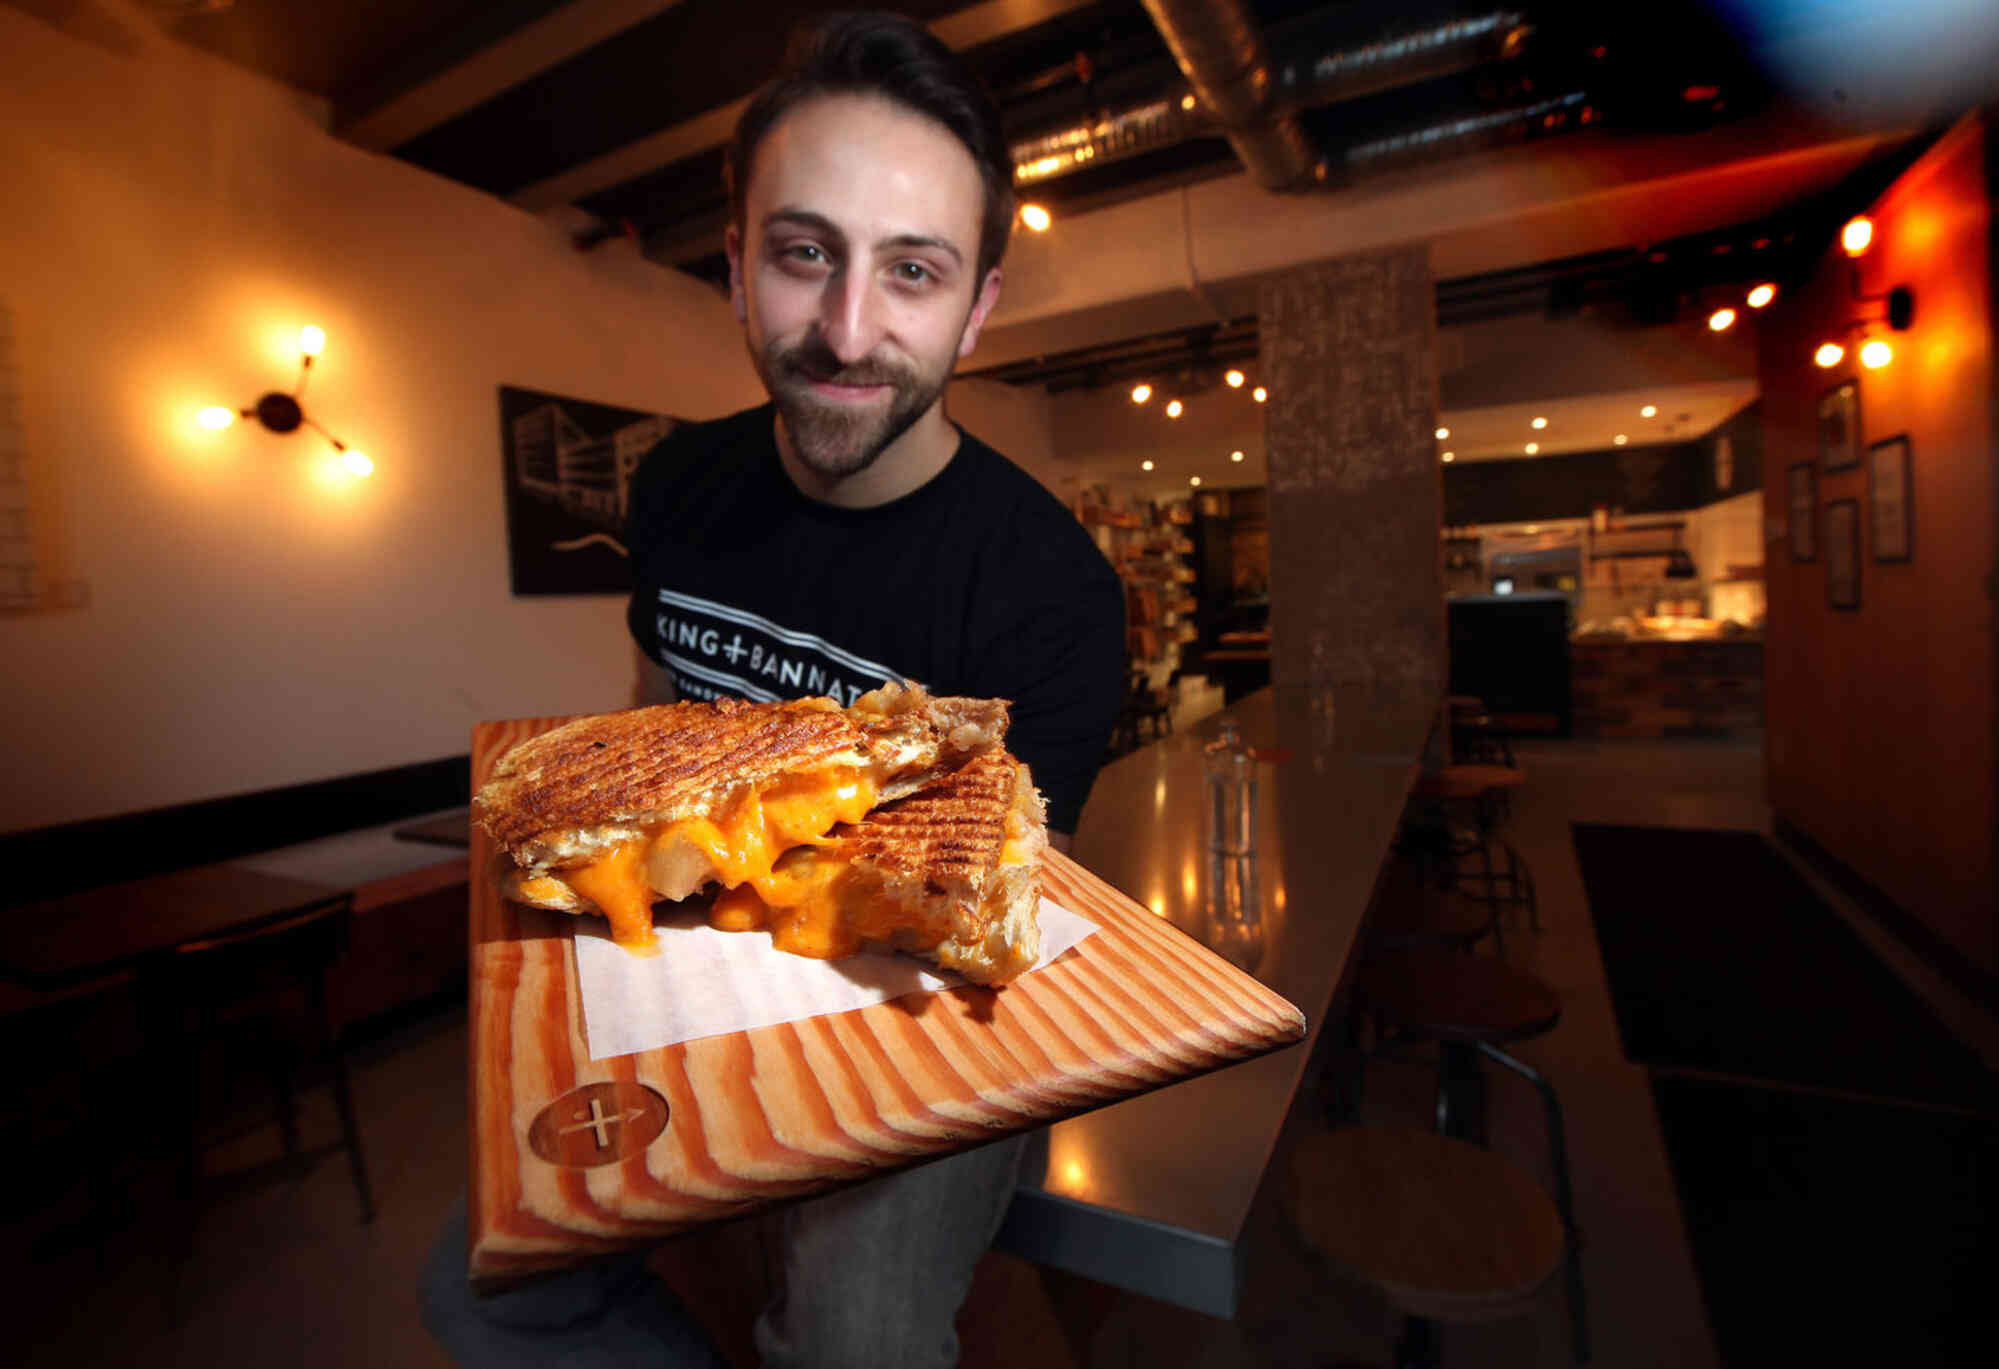 King + Bannaytne's Mike Del Buono shows off the 'Apple Pie' grilled cheese.